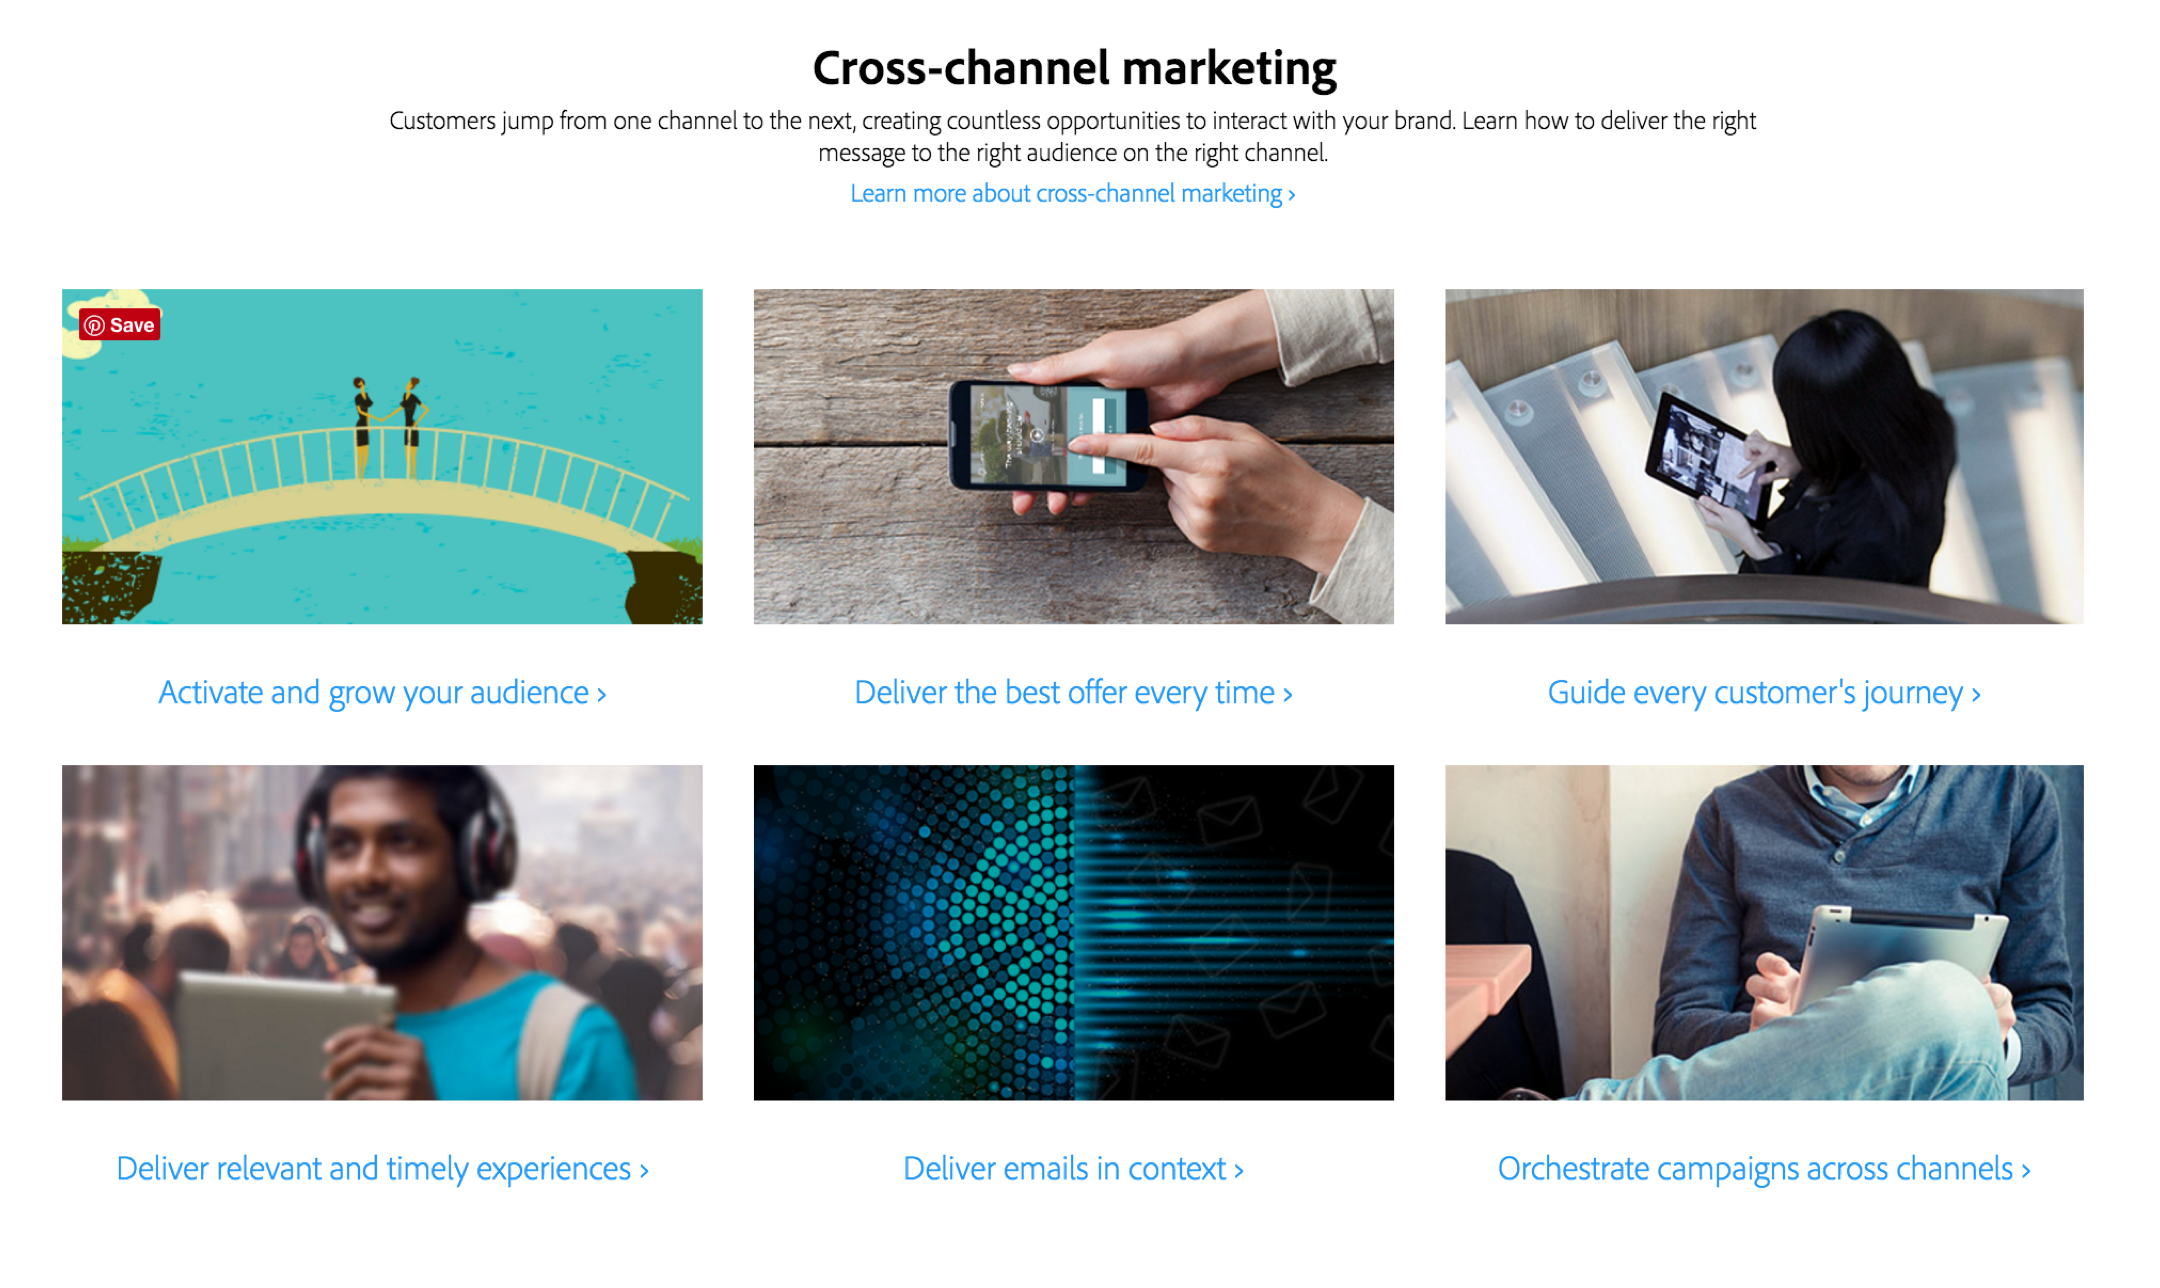 Adobe Marketing Cloud does a great job of categorizing their offerings by use case.